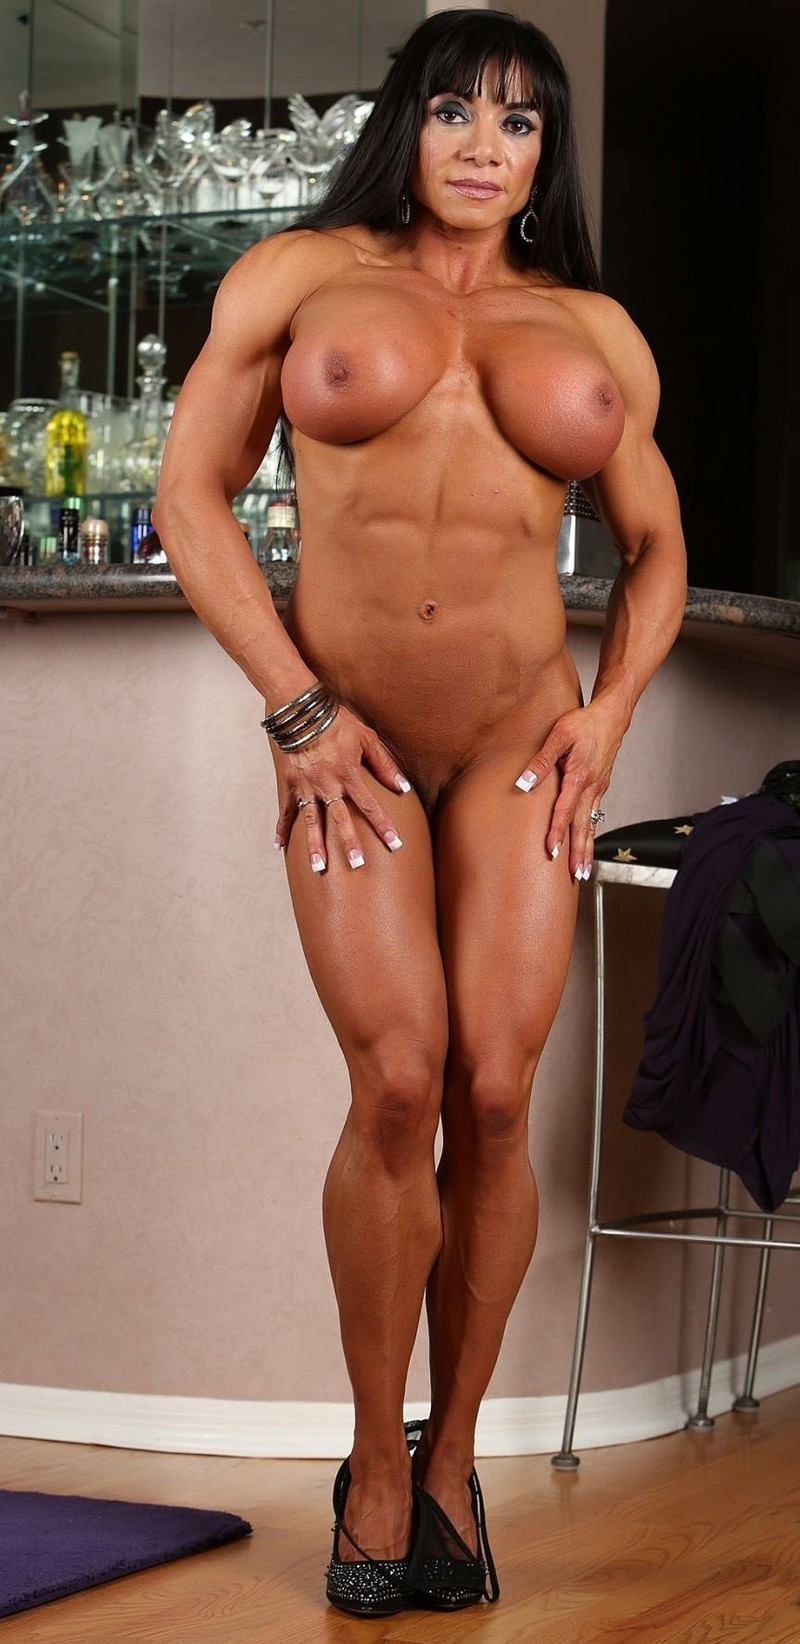 Monster tit muscle women pics free erotic photo